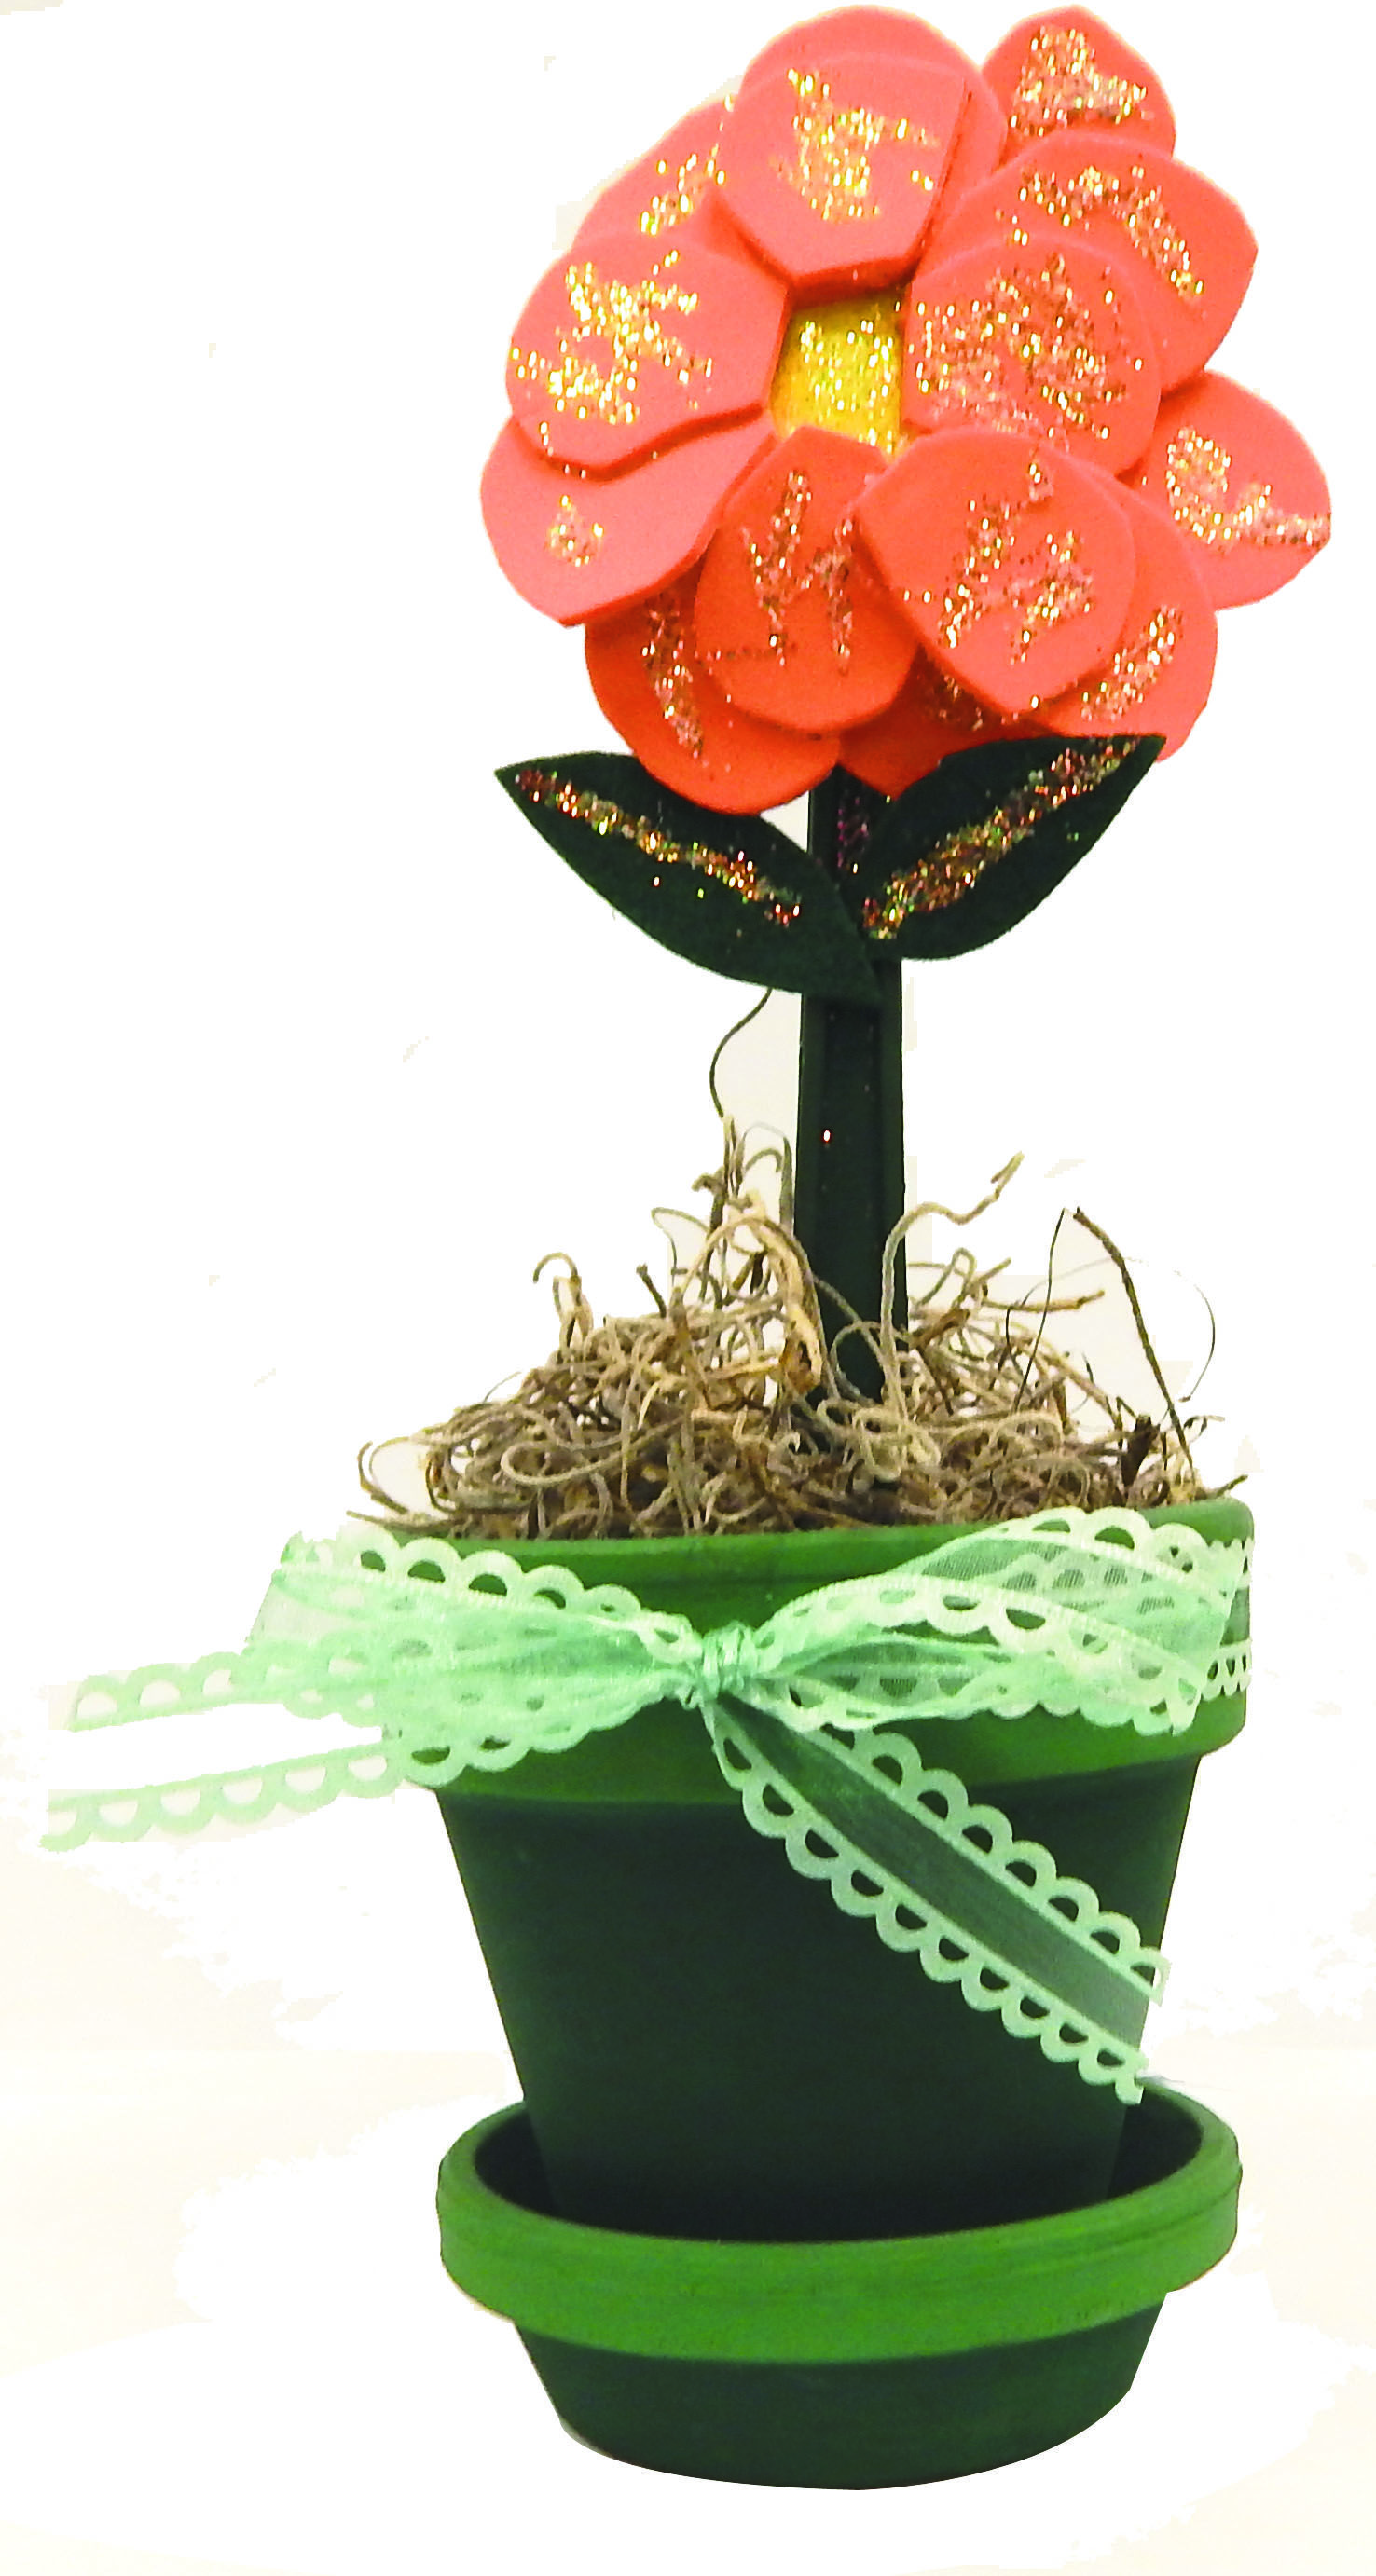 Spoon Flower with Flower Pot Materials Plastic Spoon Colored Felt